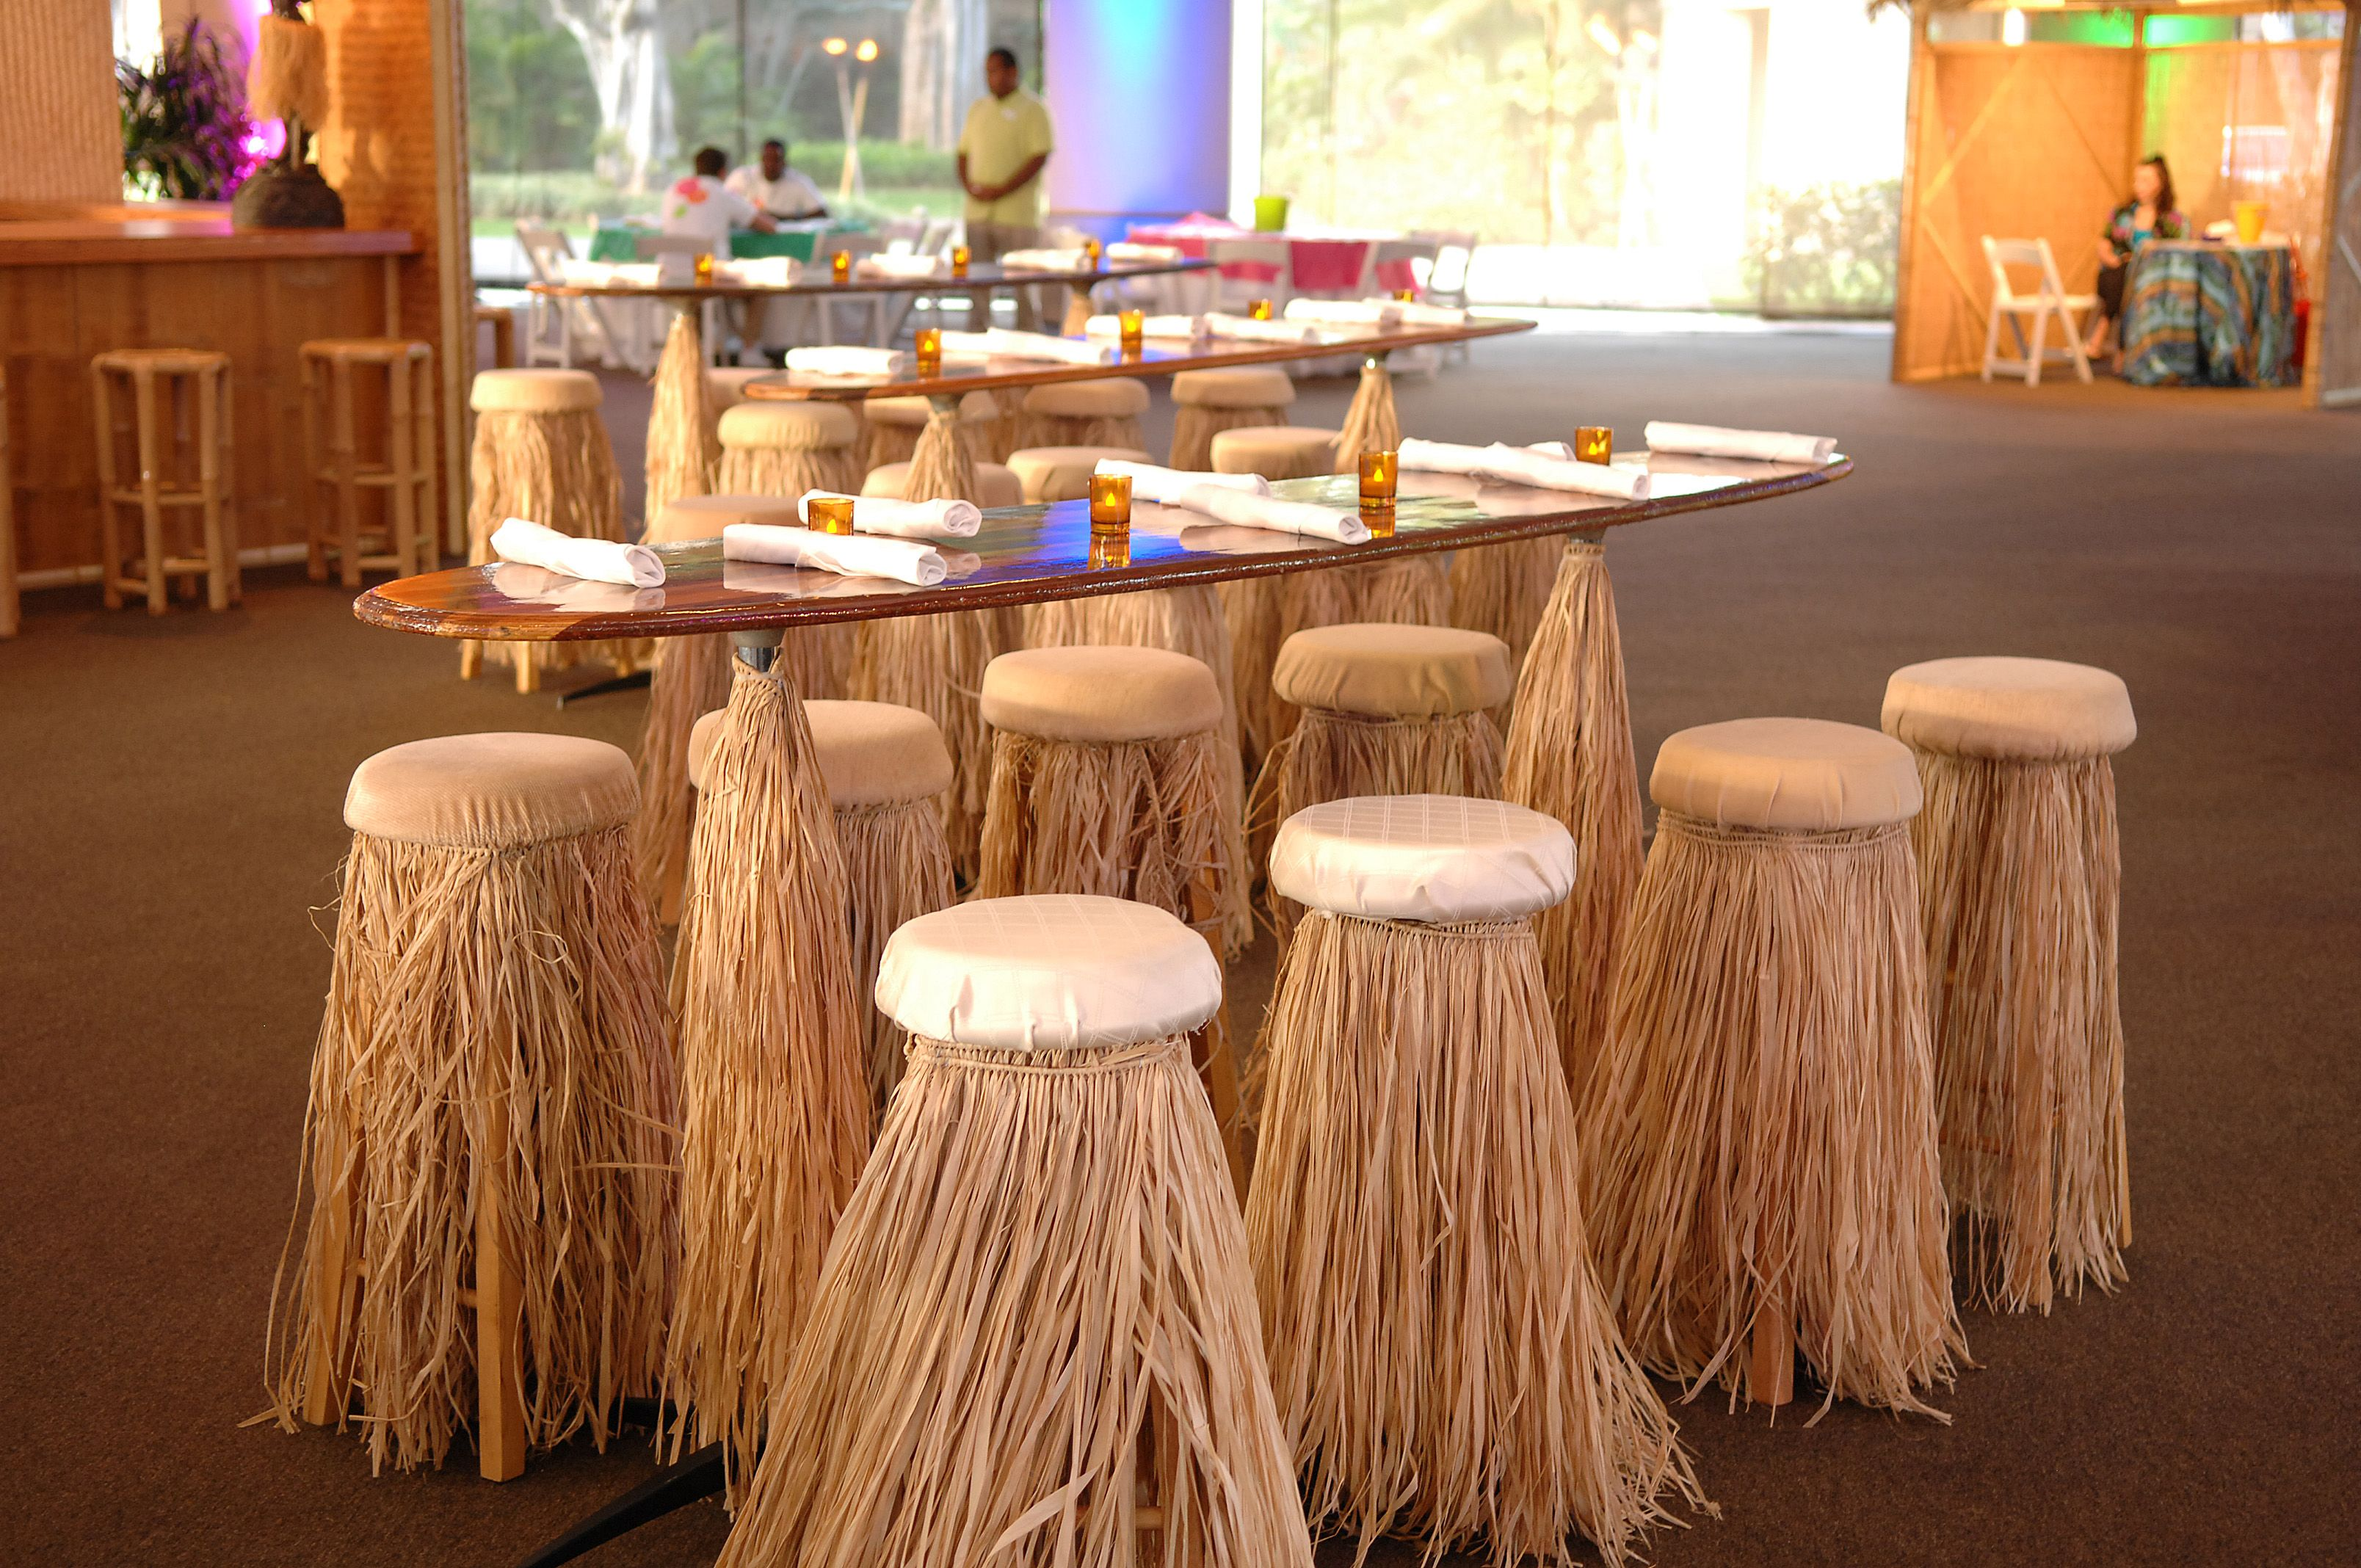 wedding chair covers hawaii picture frame surf boards as cocktail tables and grass skirts